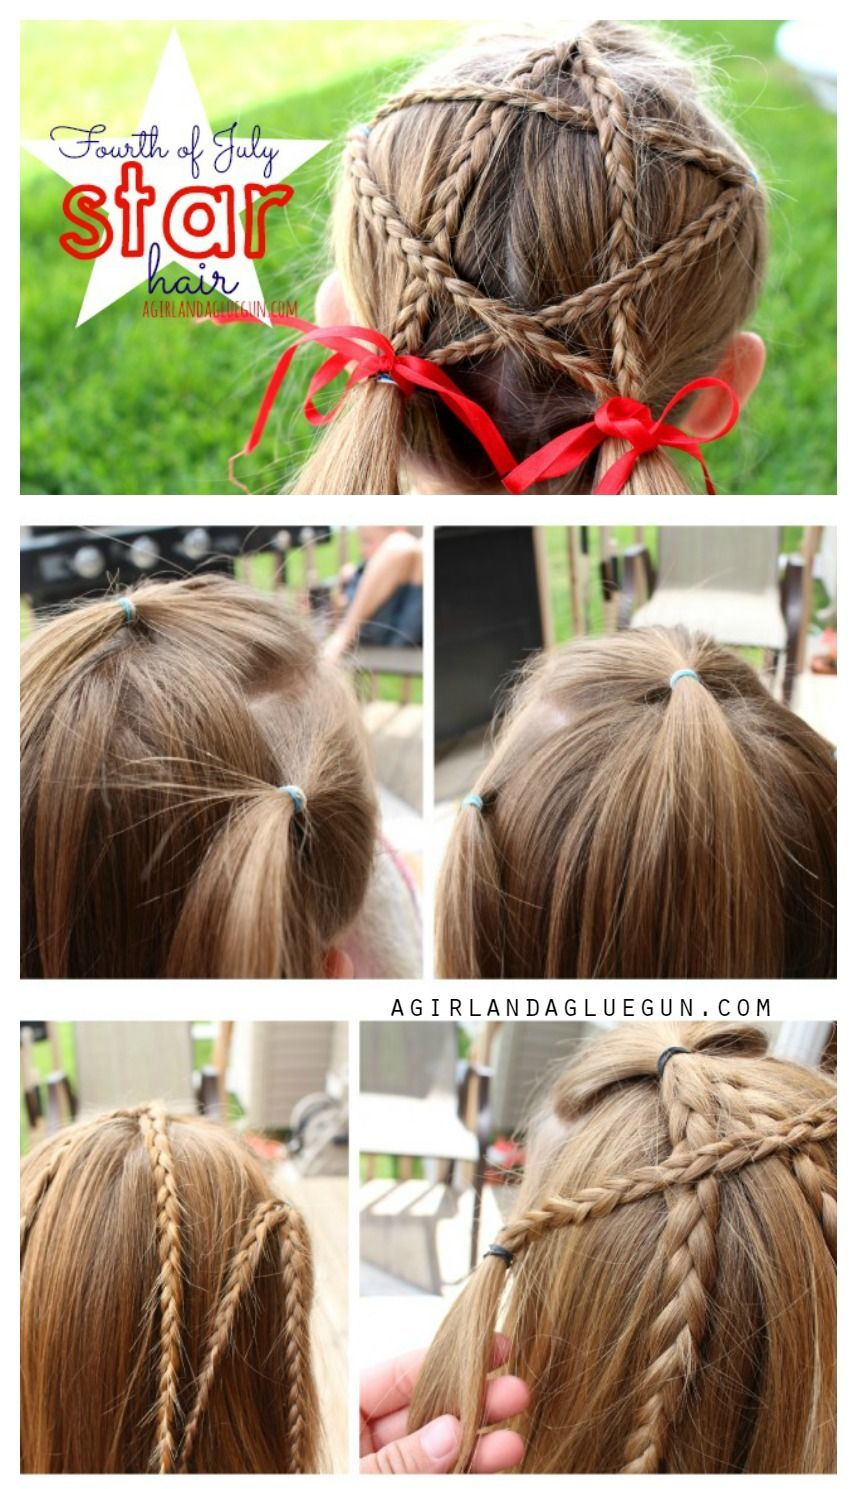 You can make this festive patriotic fourth of july star hair pinned